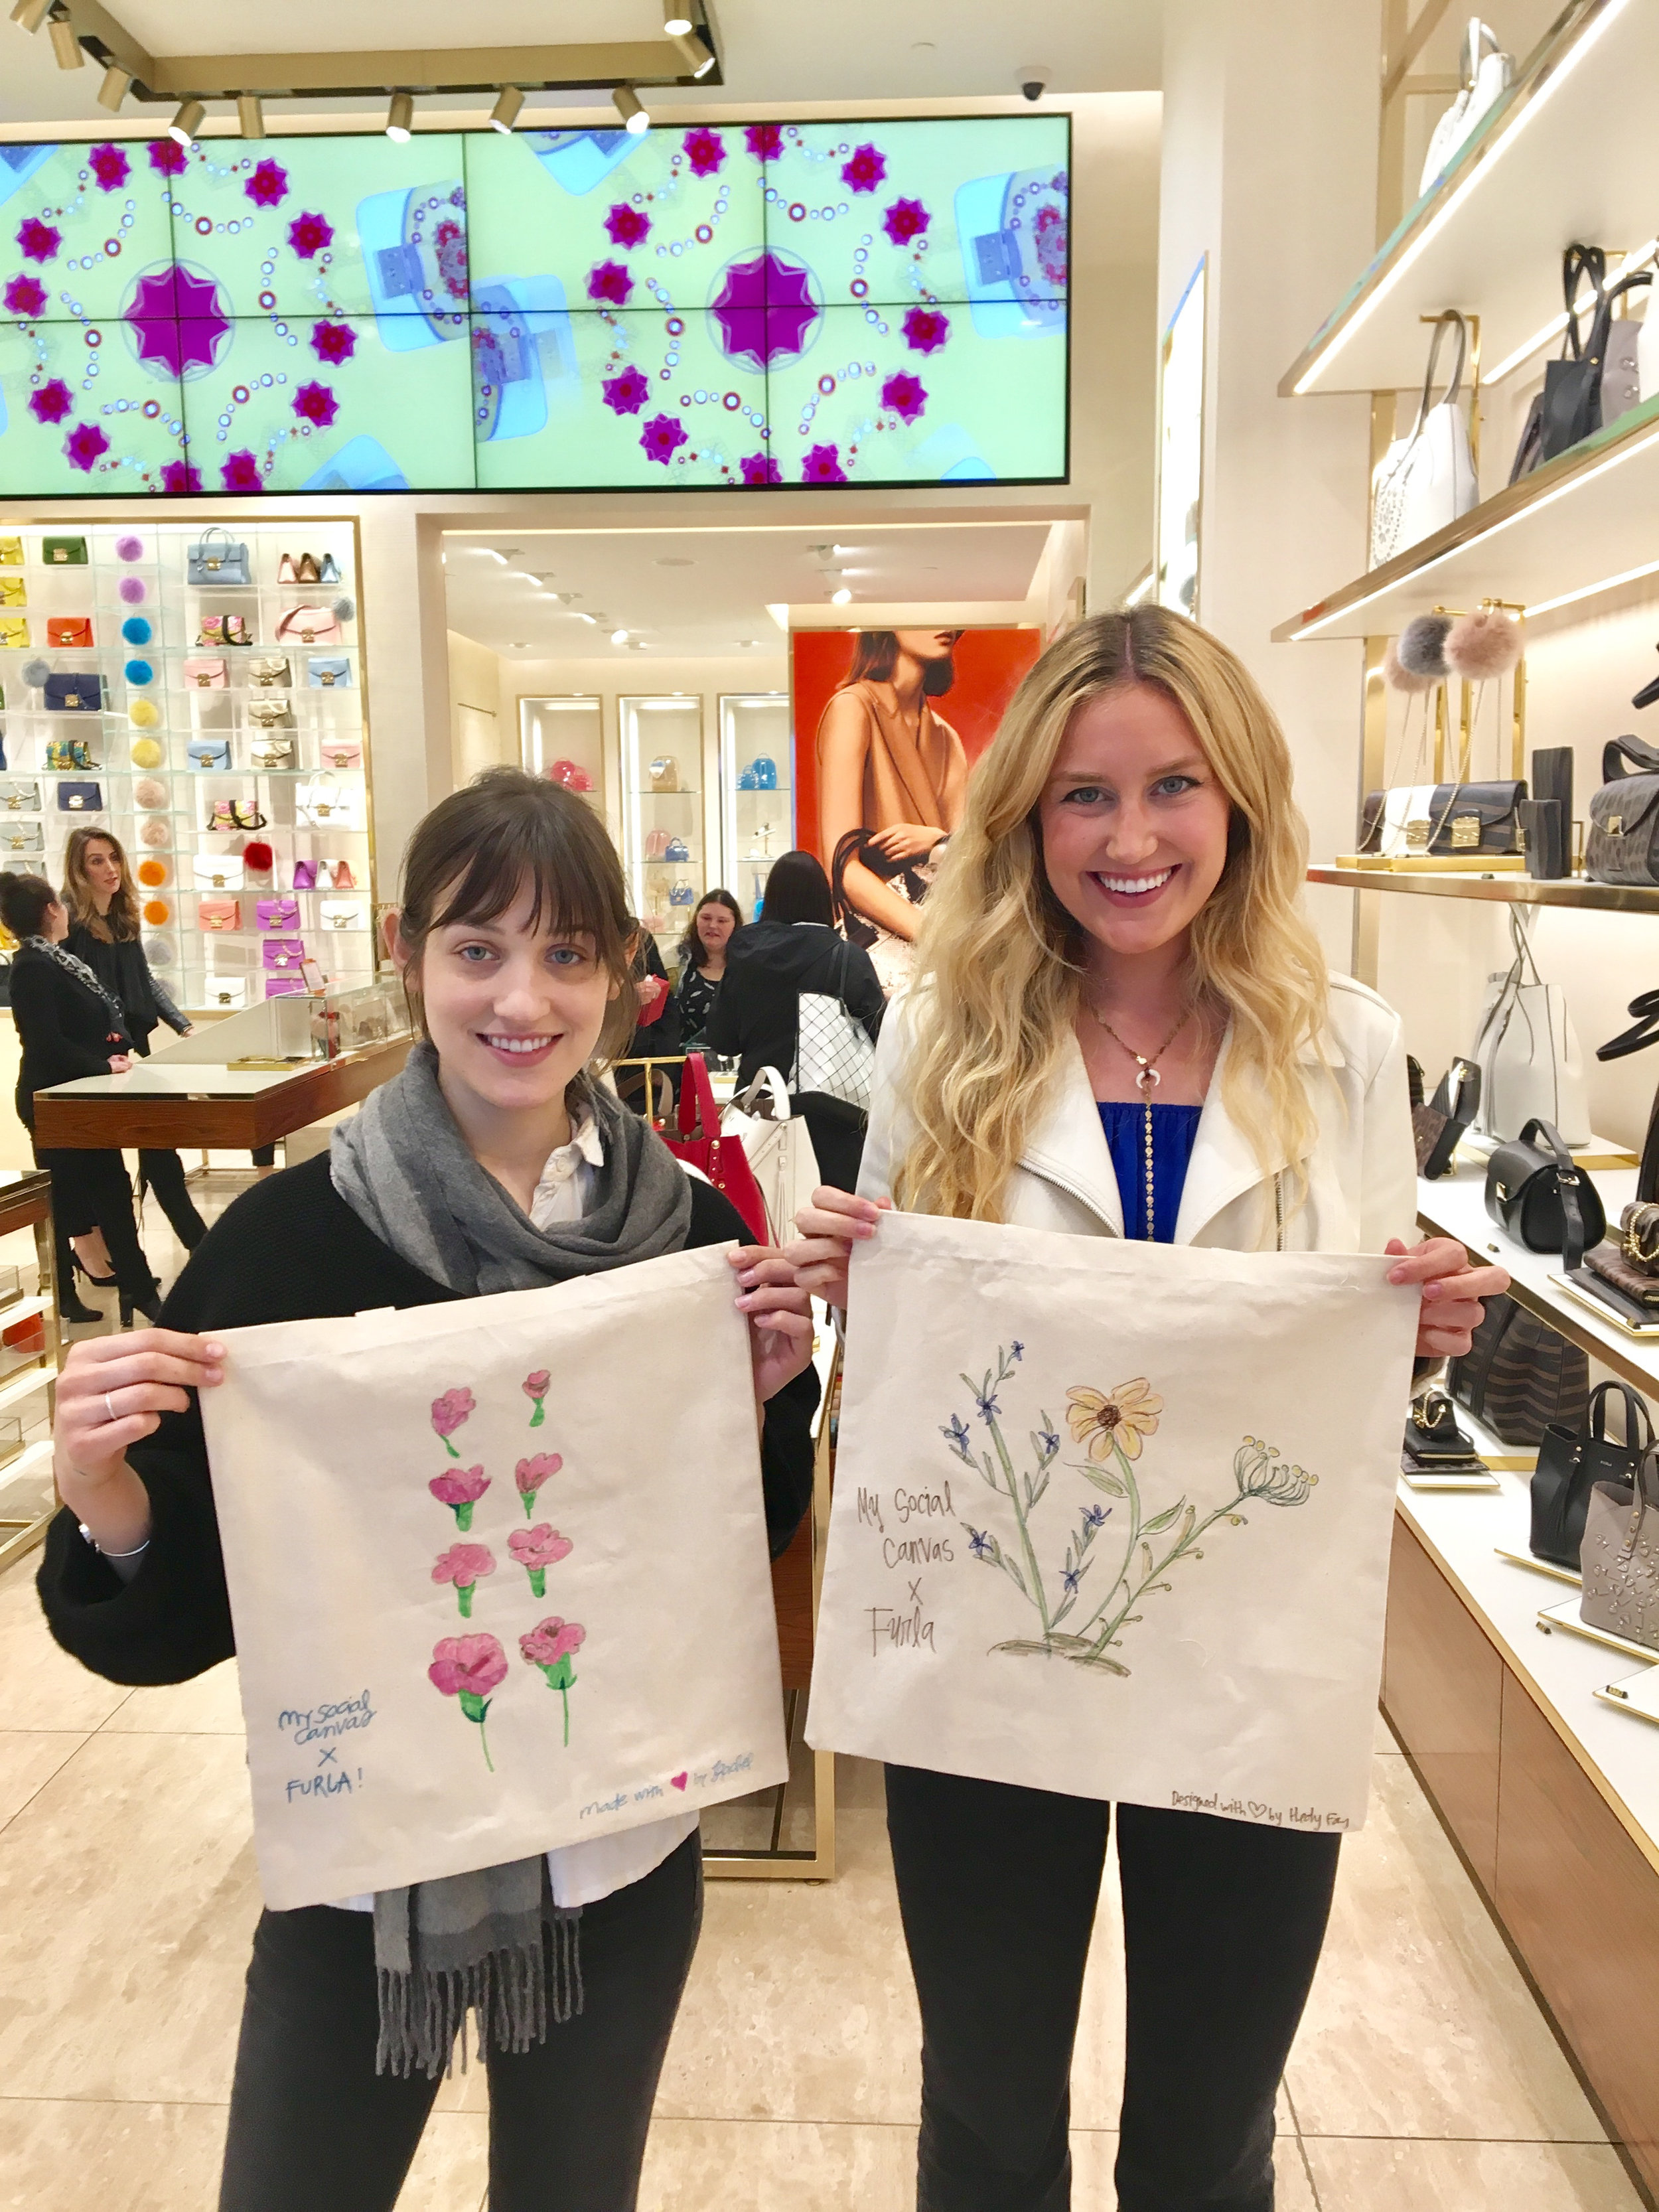 Campus Designer Rachel and MSC PR Coordinator, Hedy share their custom tote designs at our FURLA Earth Day event! Furla and their clients loved the floral patterns our campus designers created in celebration of Earth Day.